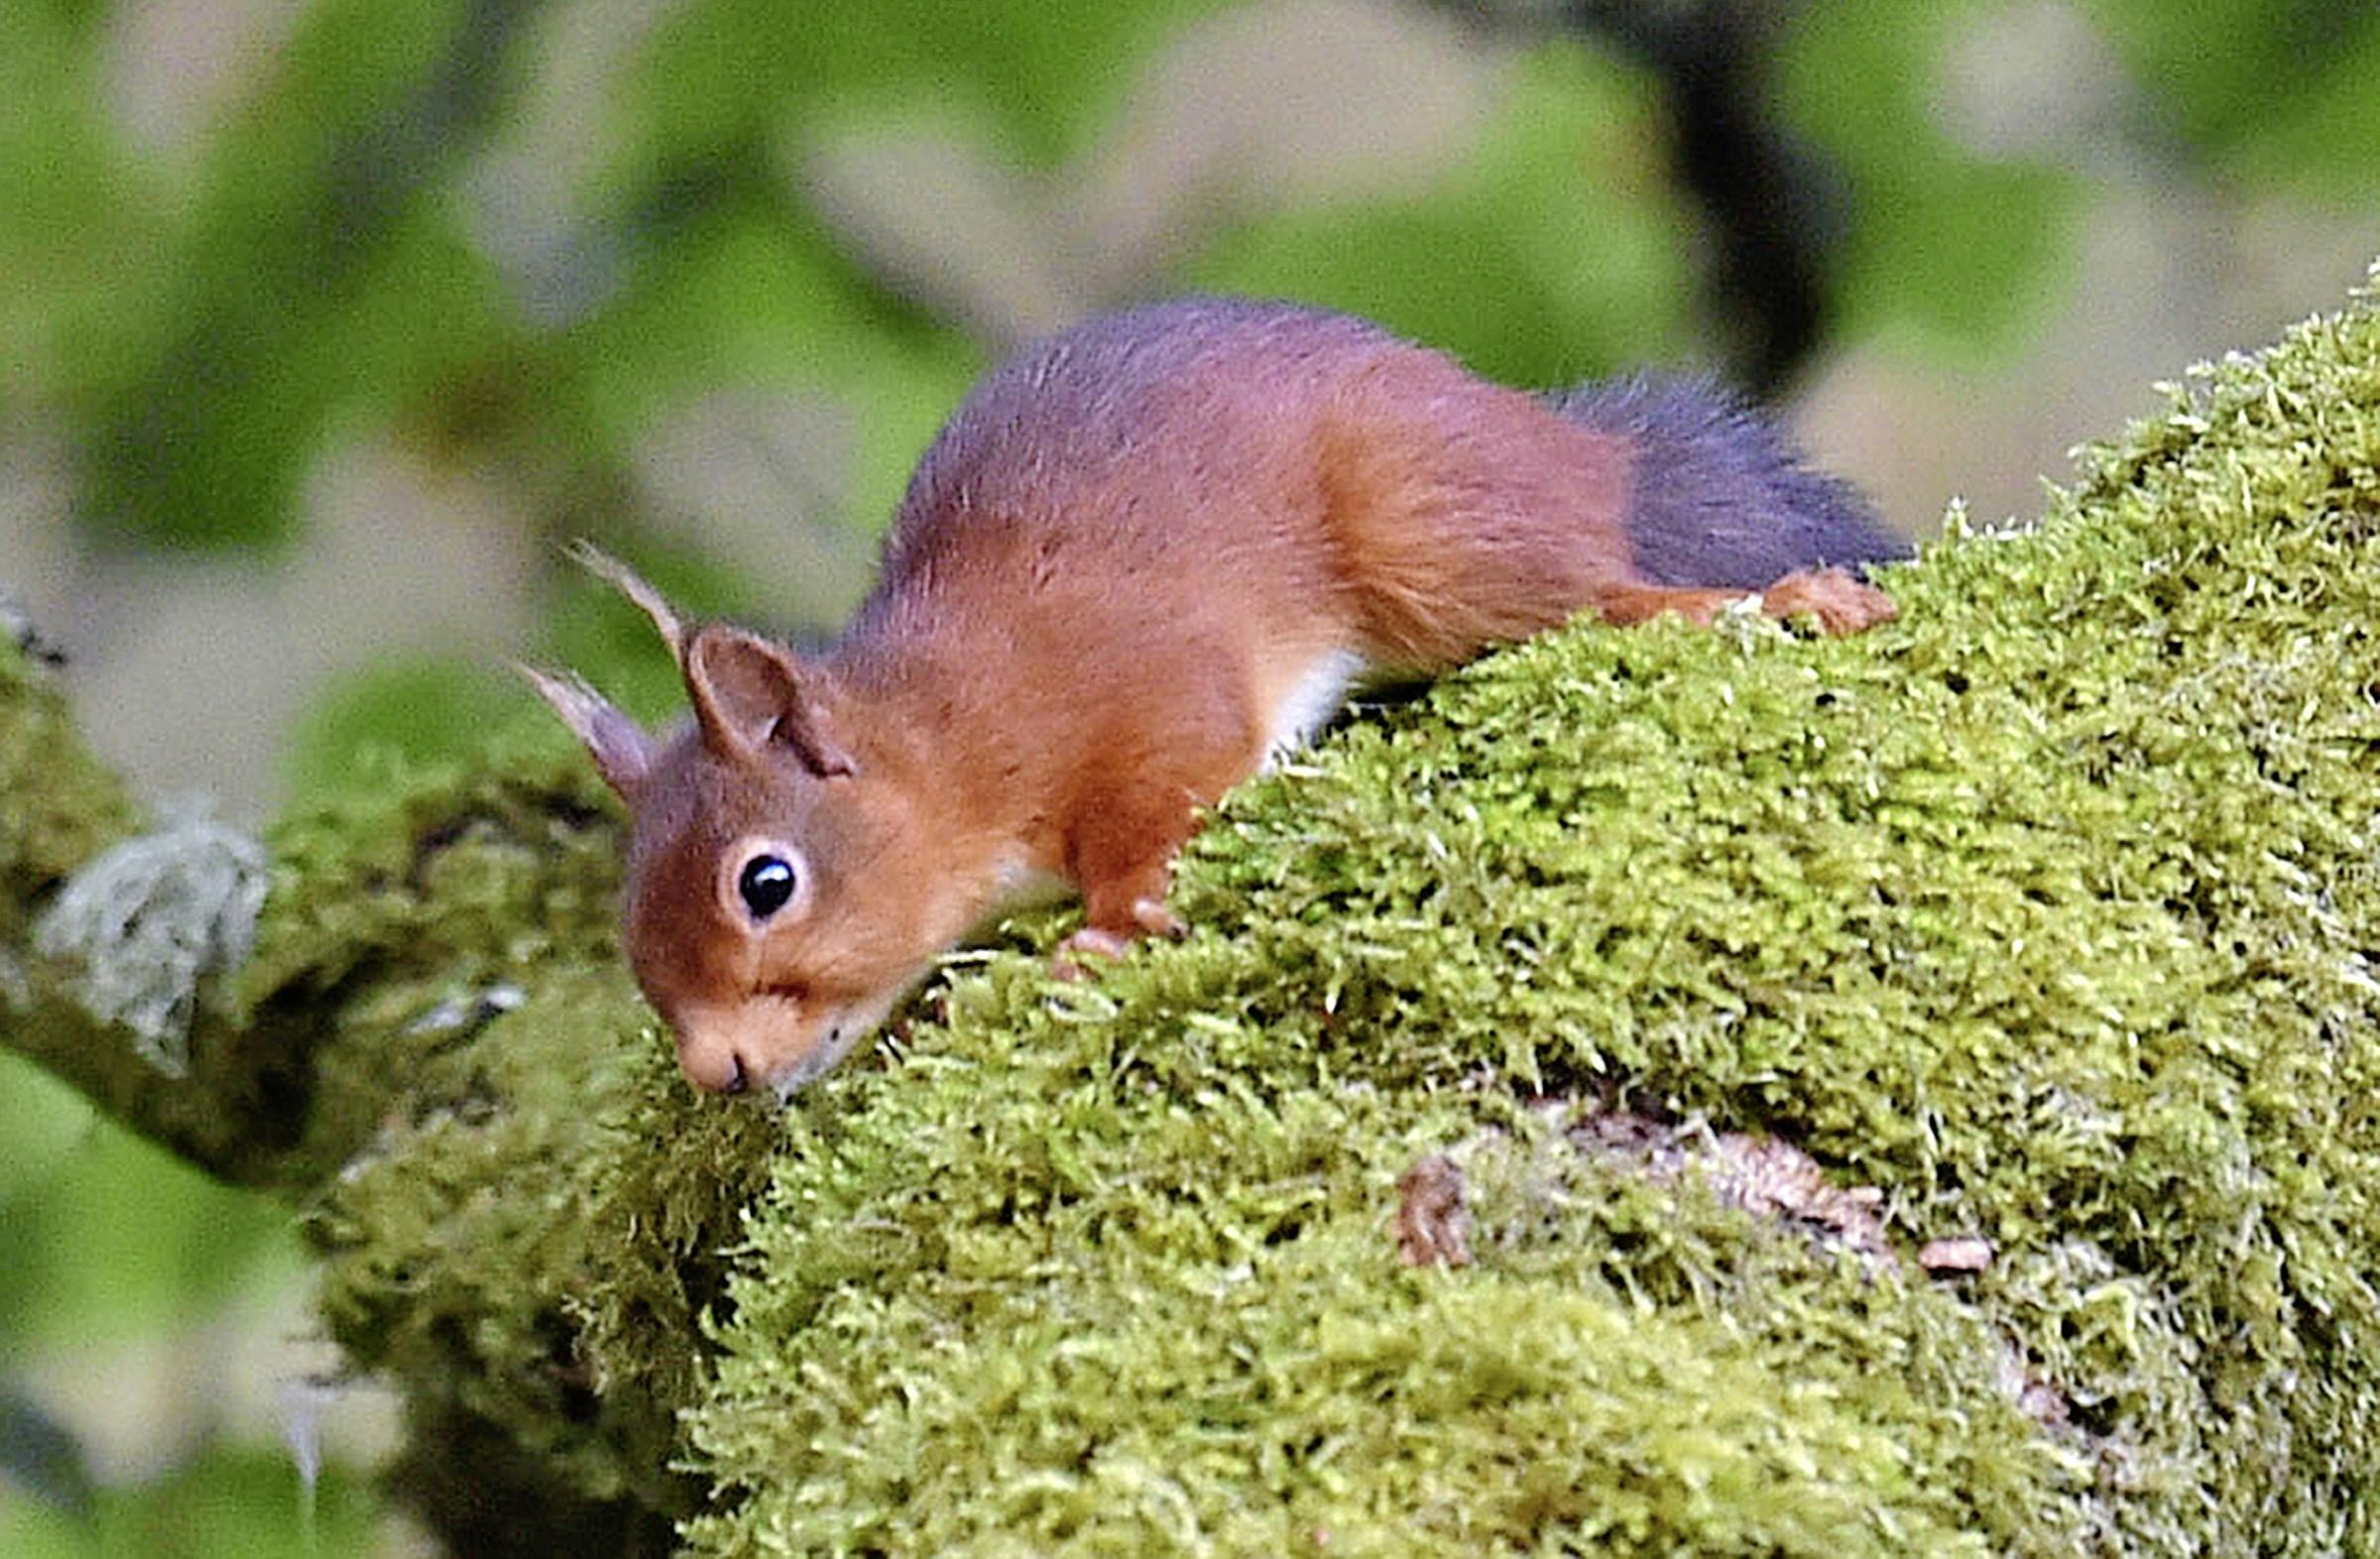 Denbighshire's Clocaenog Forest providing safe haven for red squirrels